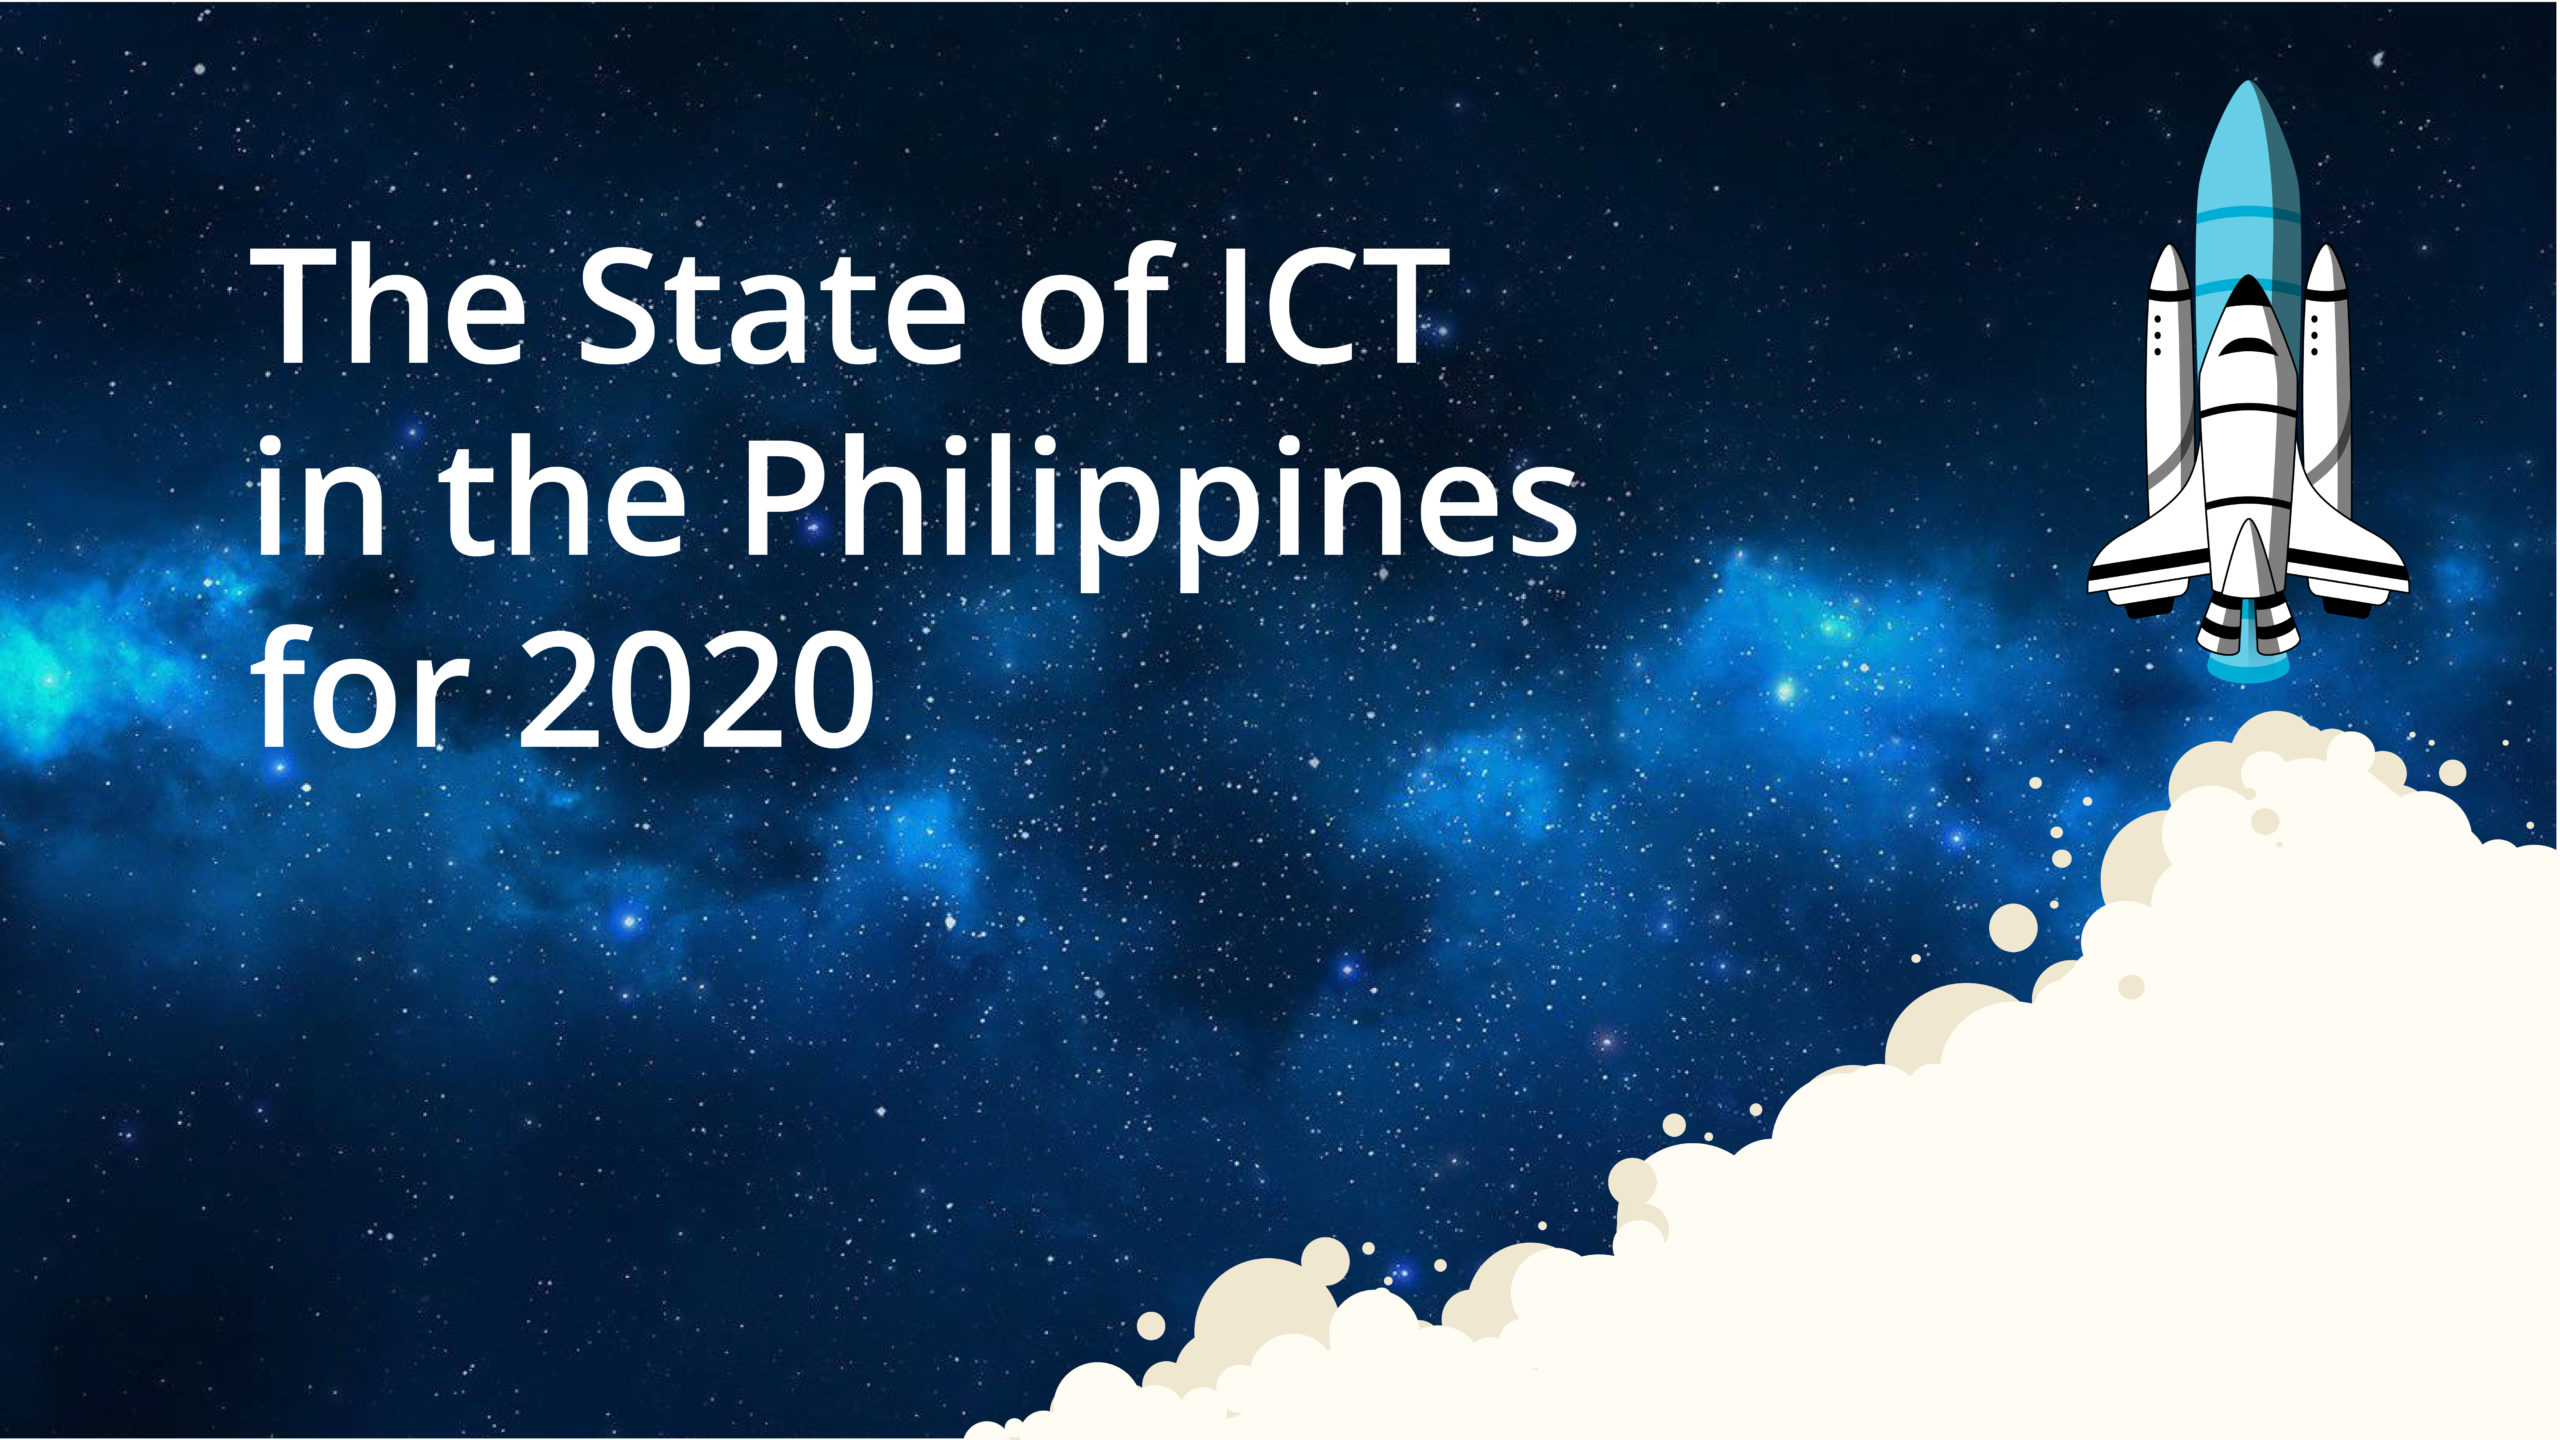 Where is the Philippine ICT Heading in 2020?